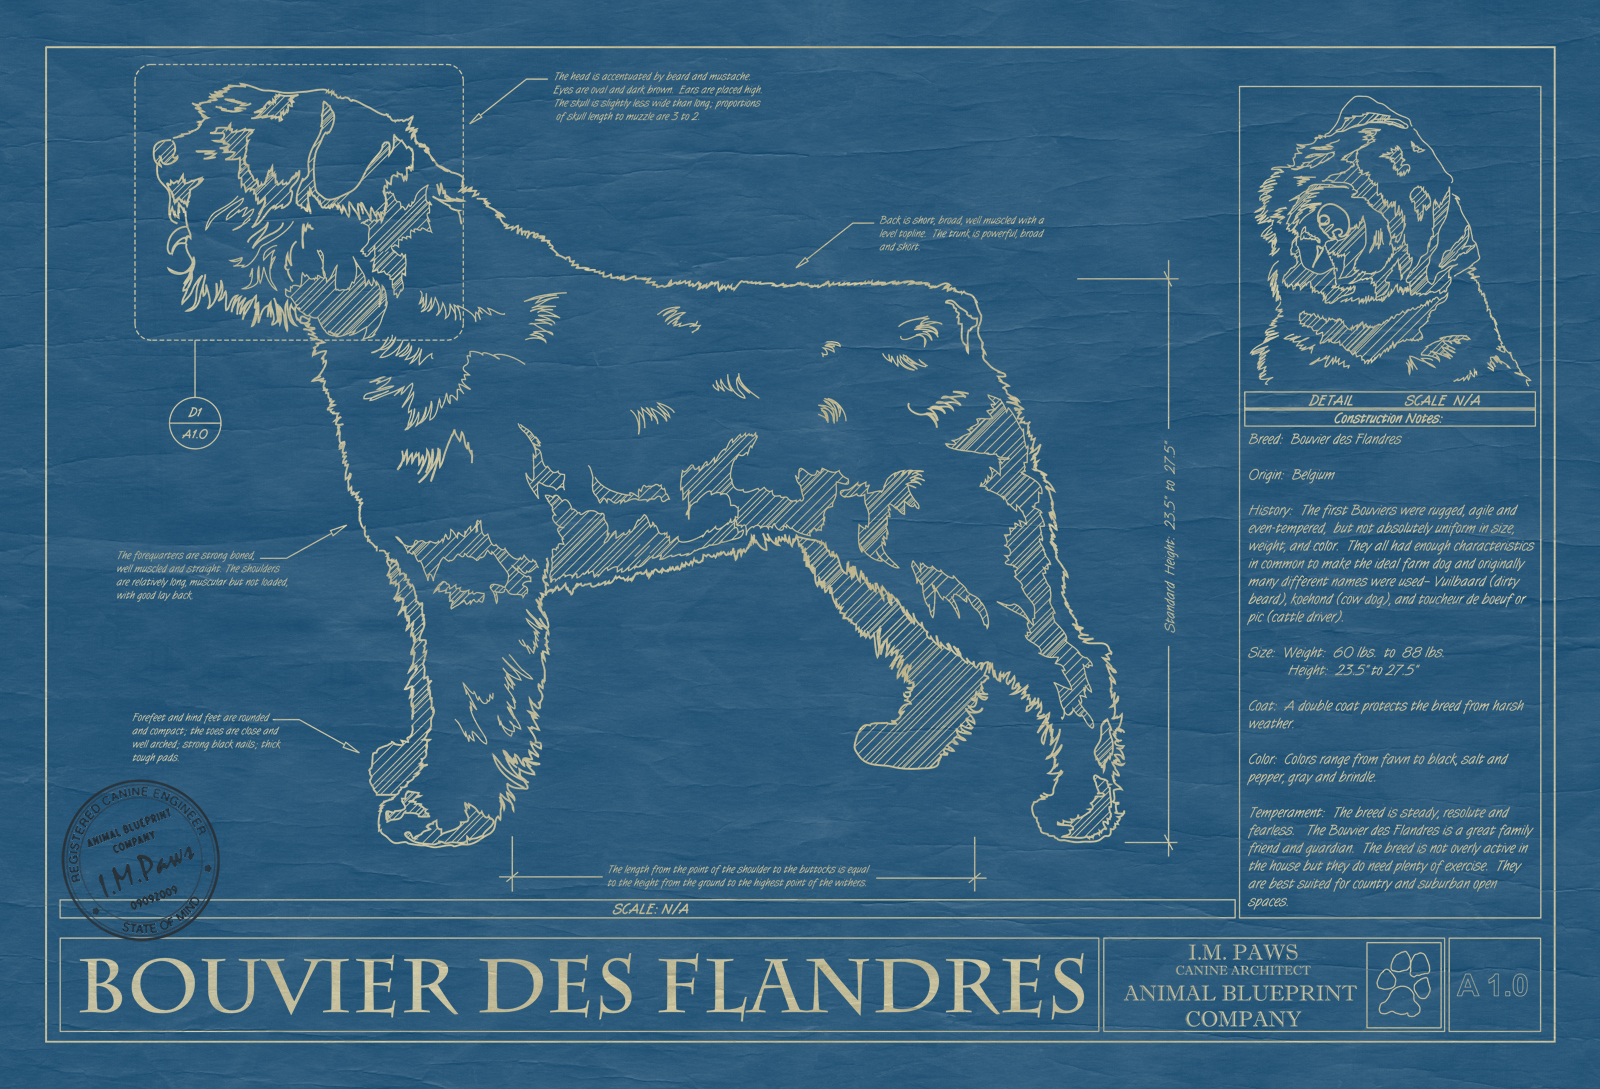 Bouvier des flandres animal blueprint company bouvier des flandres dog blueprint malvernweather Gallery